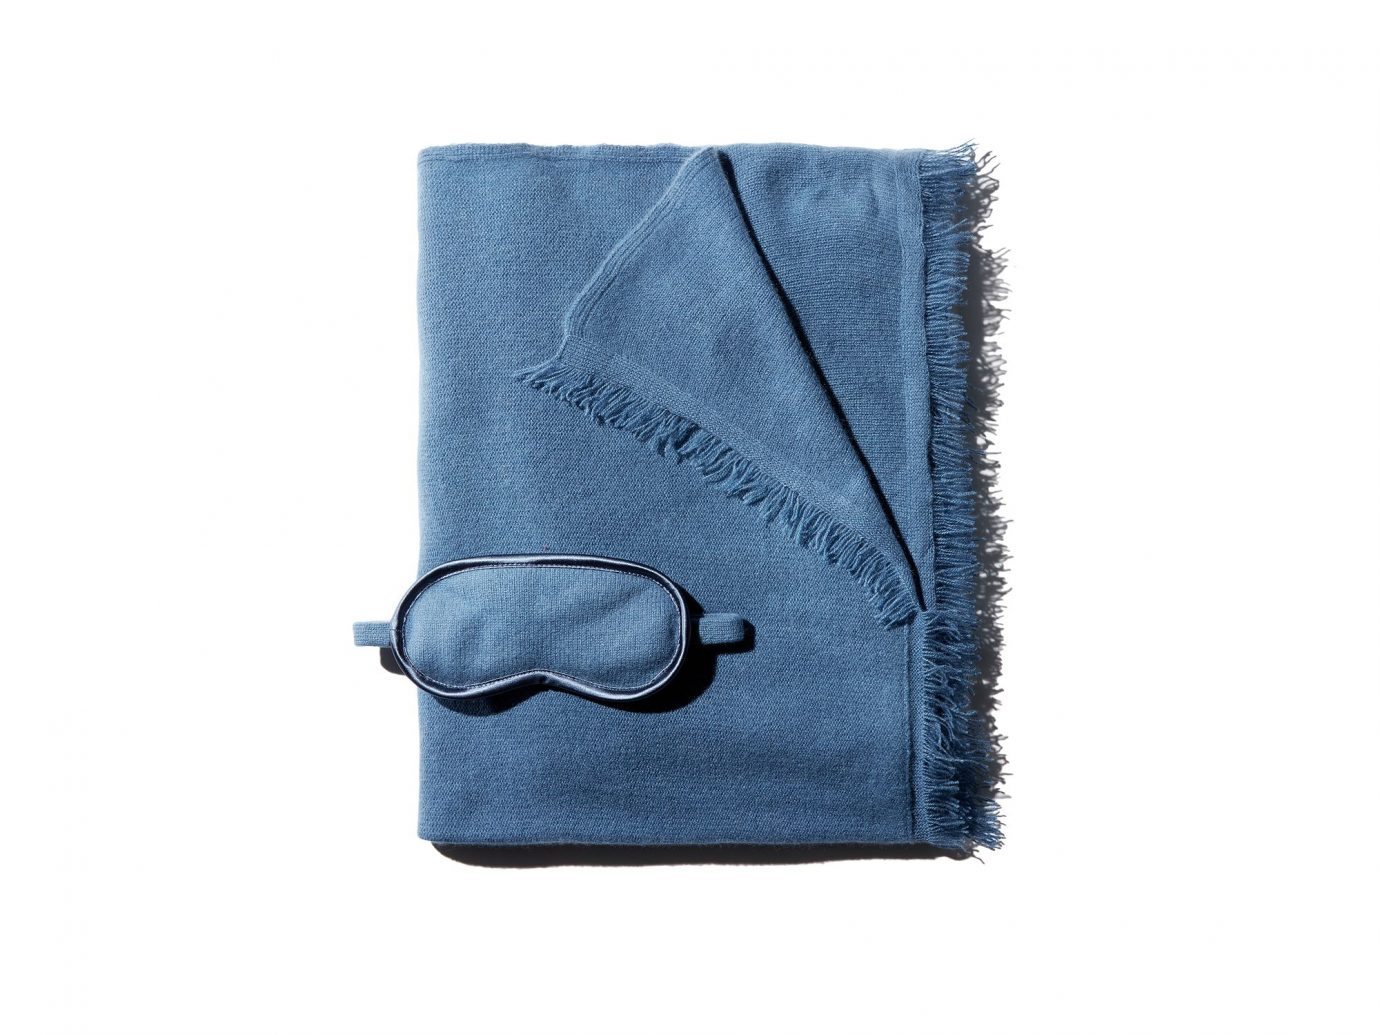 Portolano Eye Mask & Cashmere Wrap Travel Gift Set